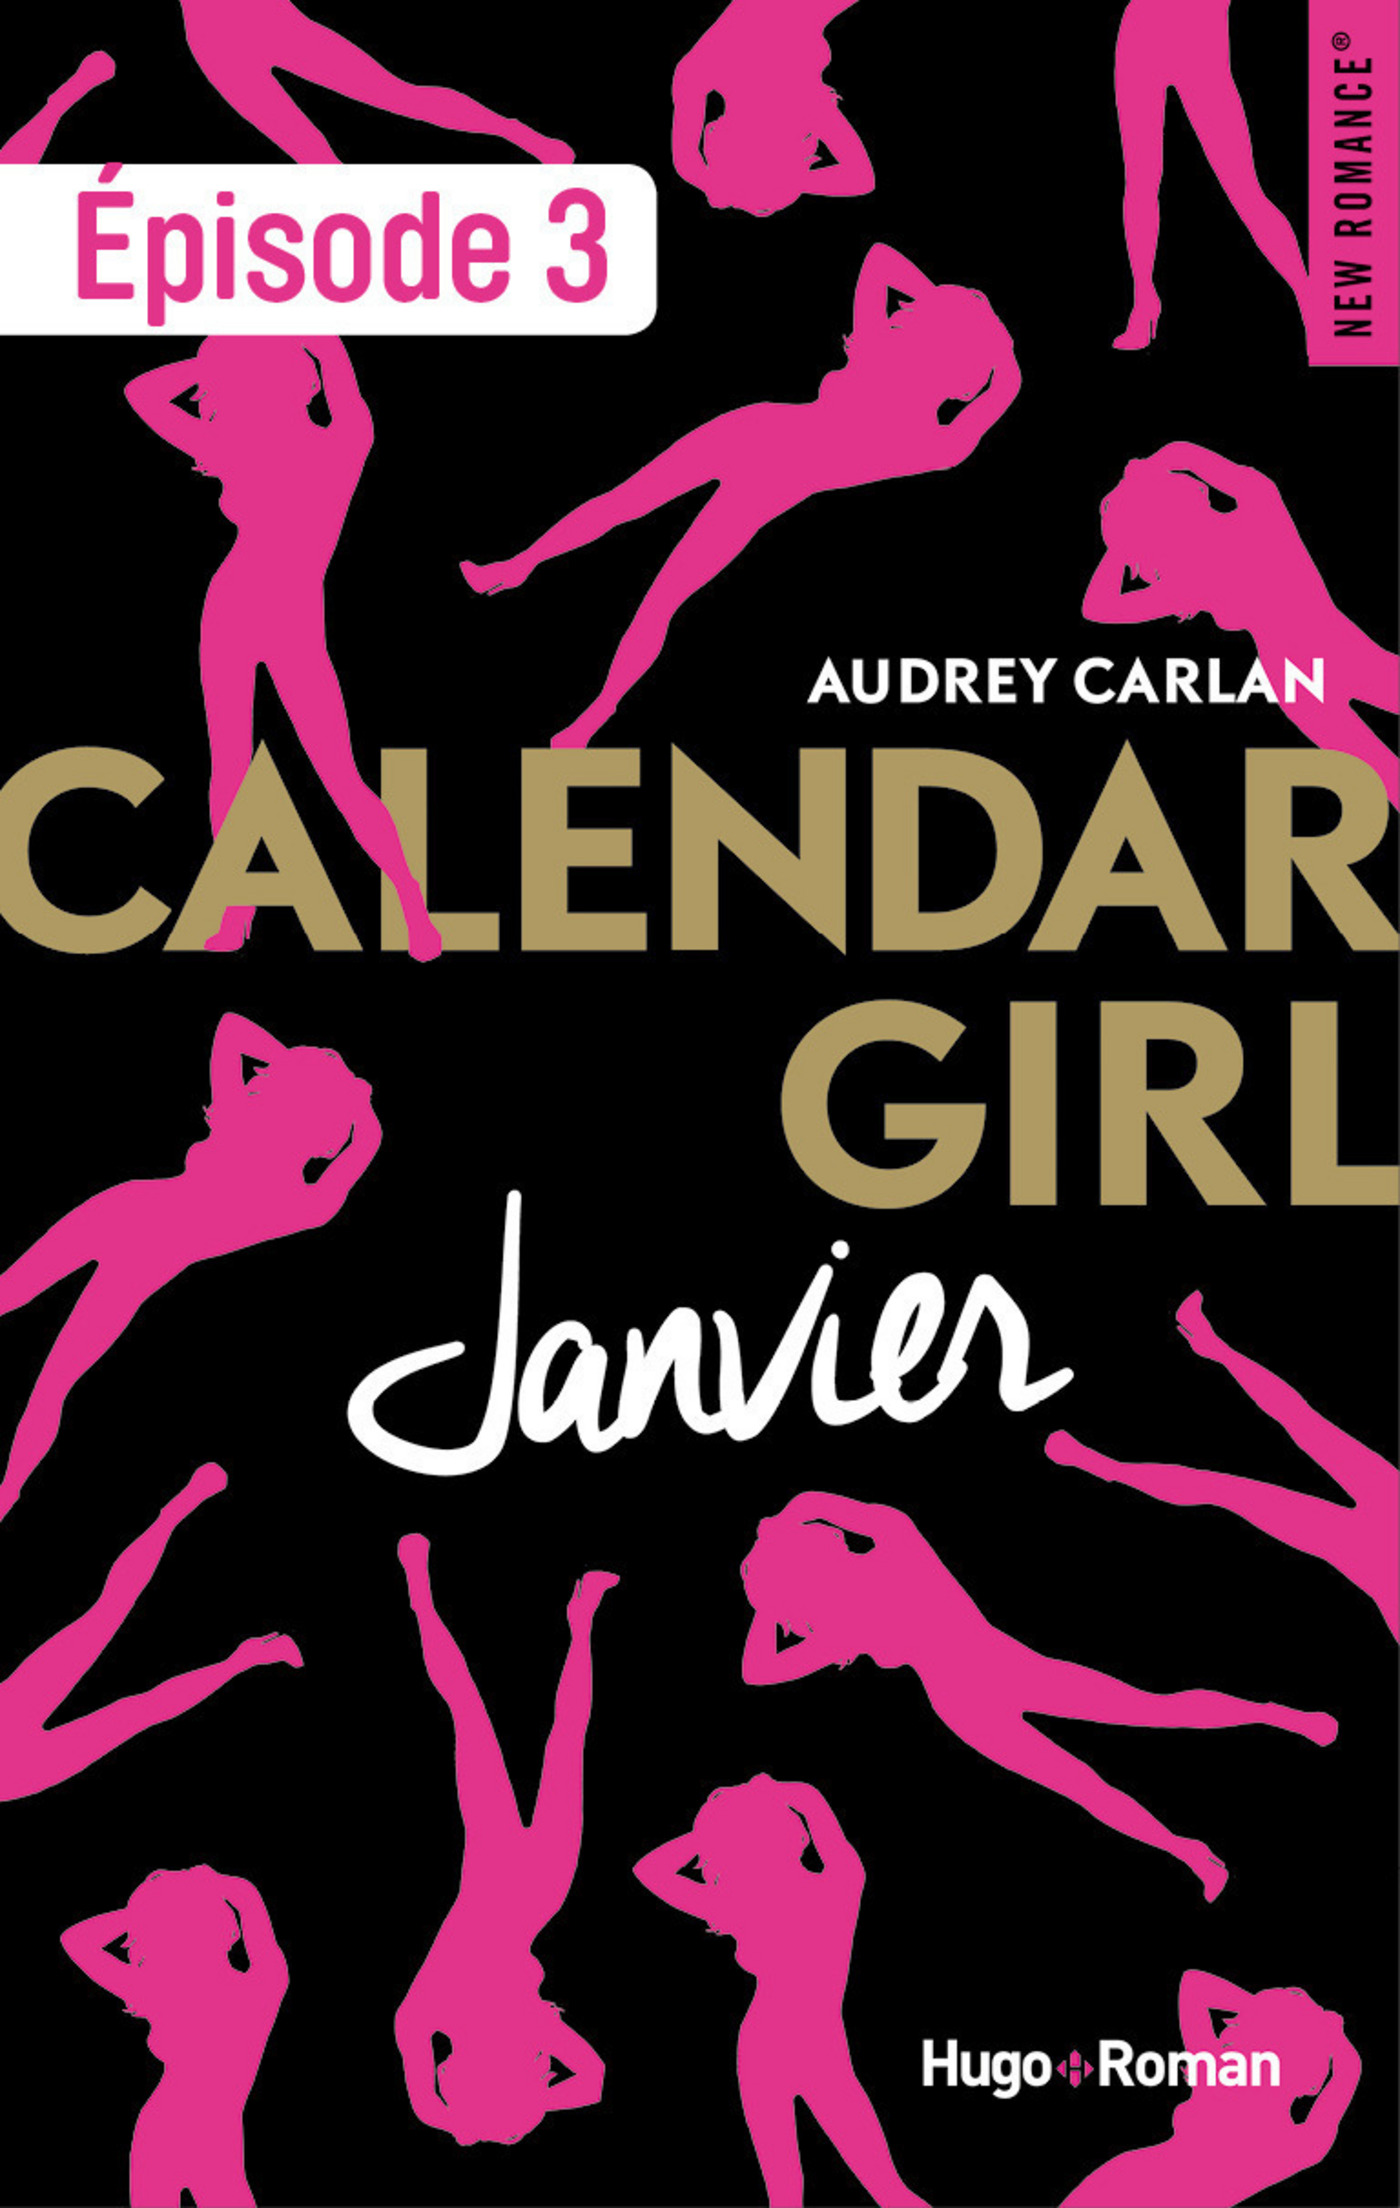 Calendar Girl - Janvier Episode 3